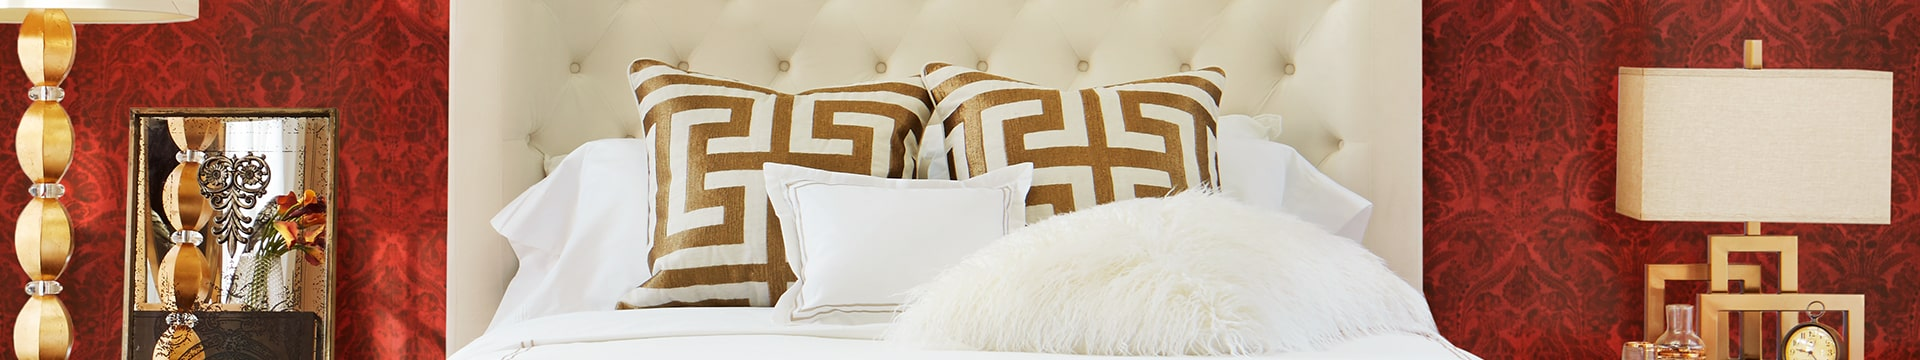 Bedroom Accent Pillows